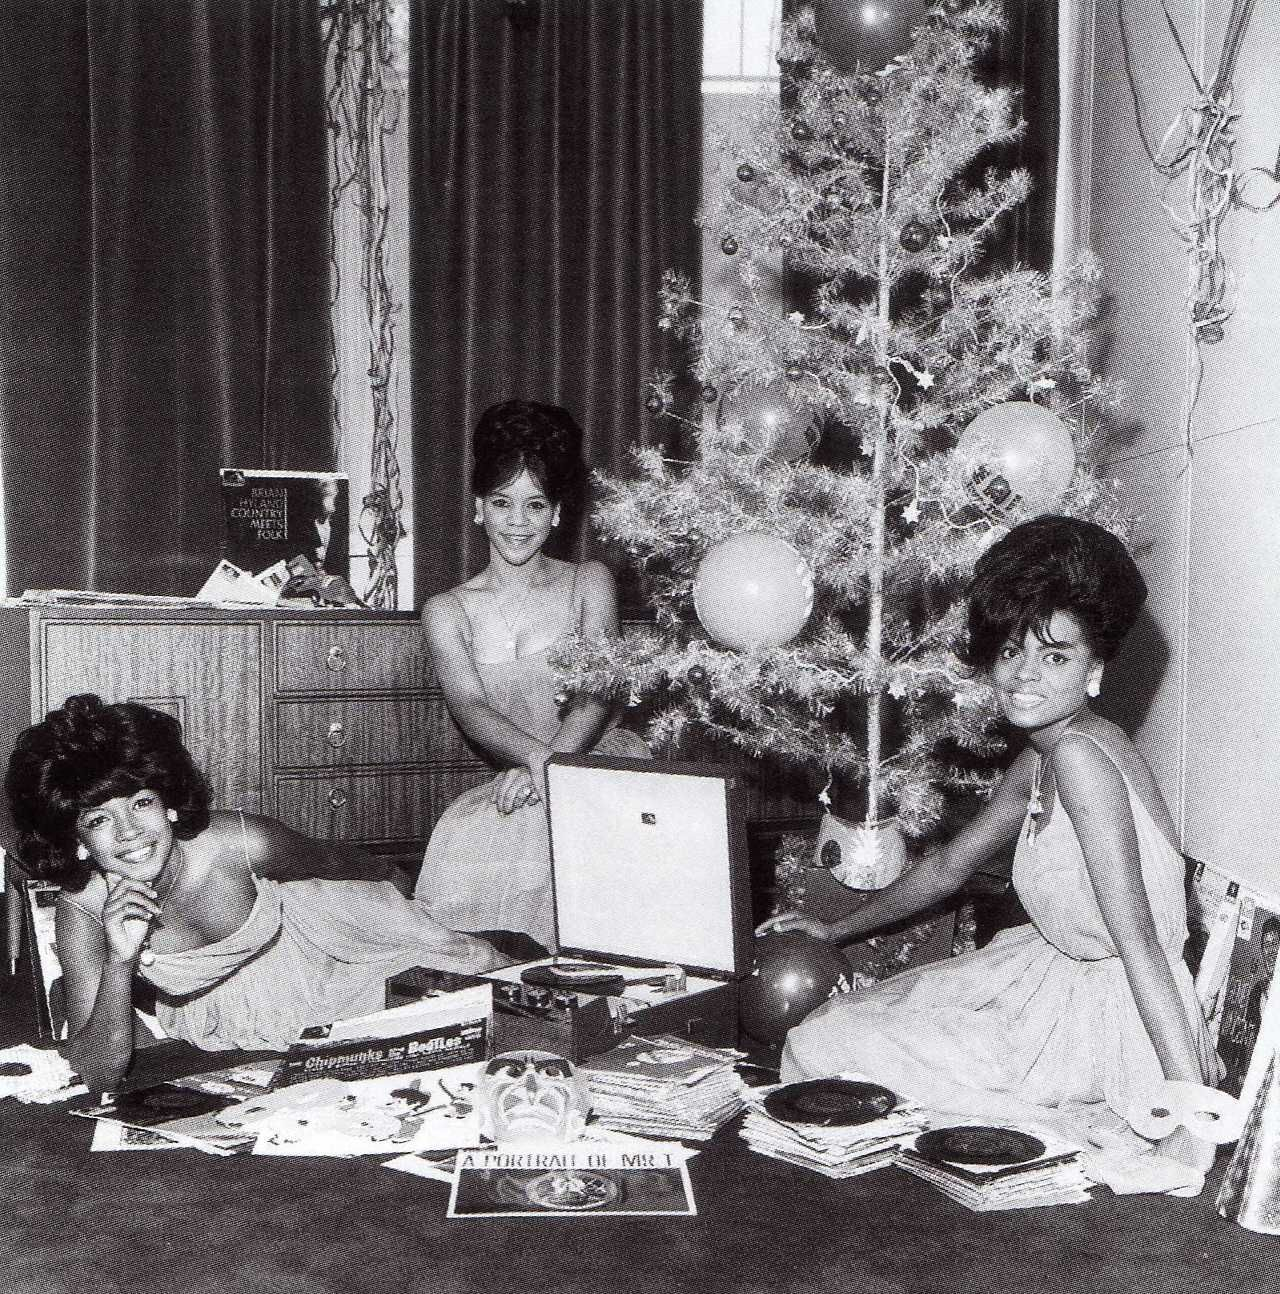 Diana Ross and the Supremes Christmas Records... The